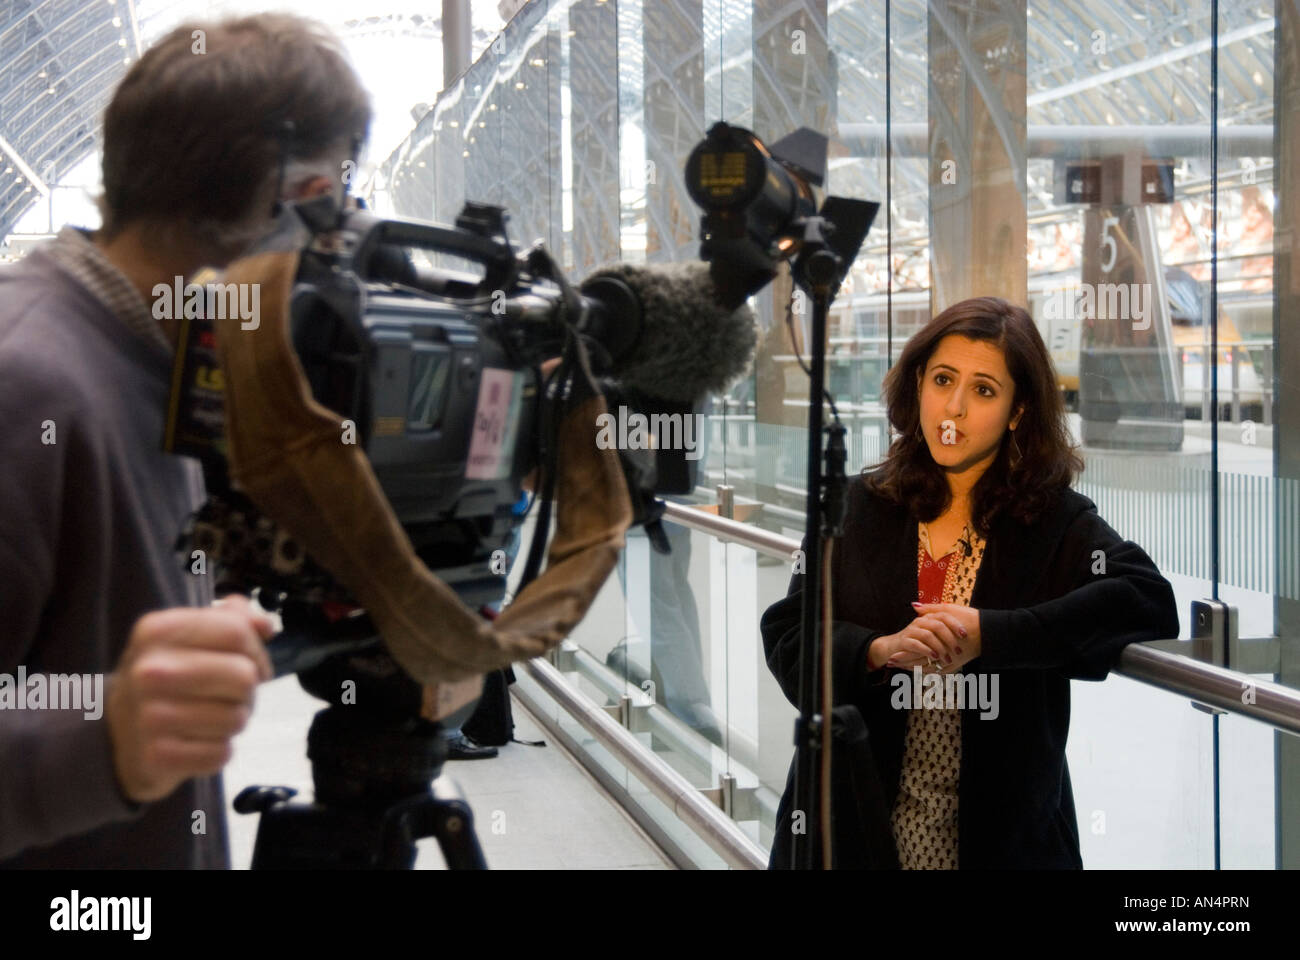 Television news reporter in front of TV camera London England UK - Stock Image